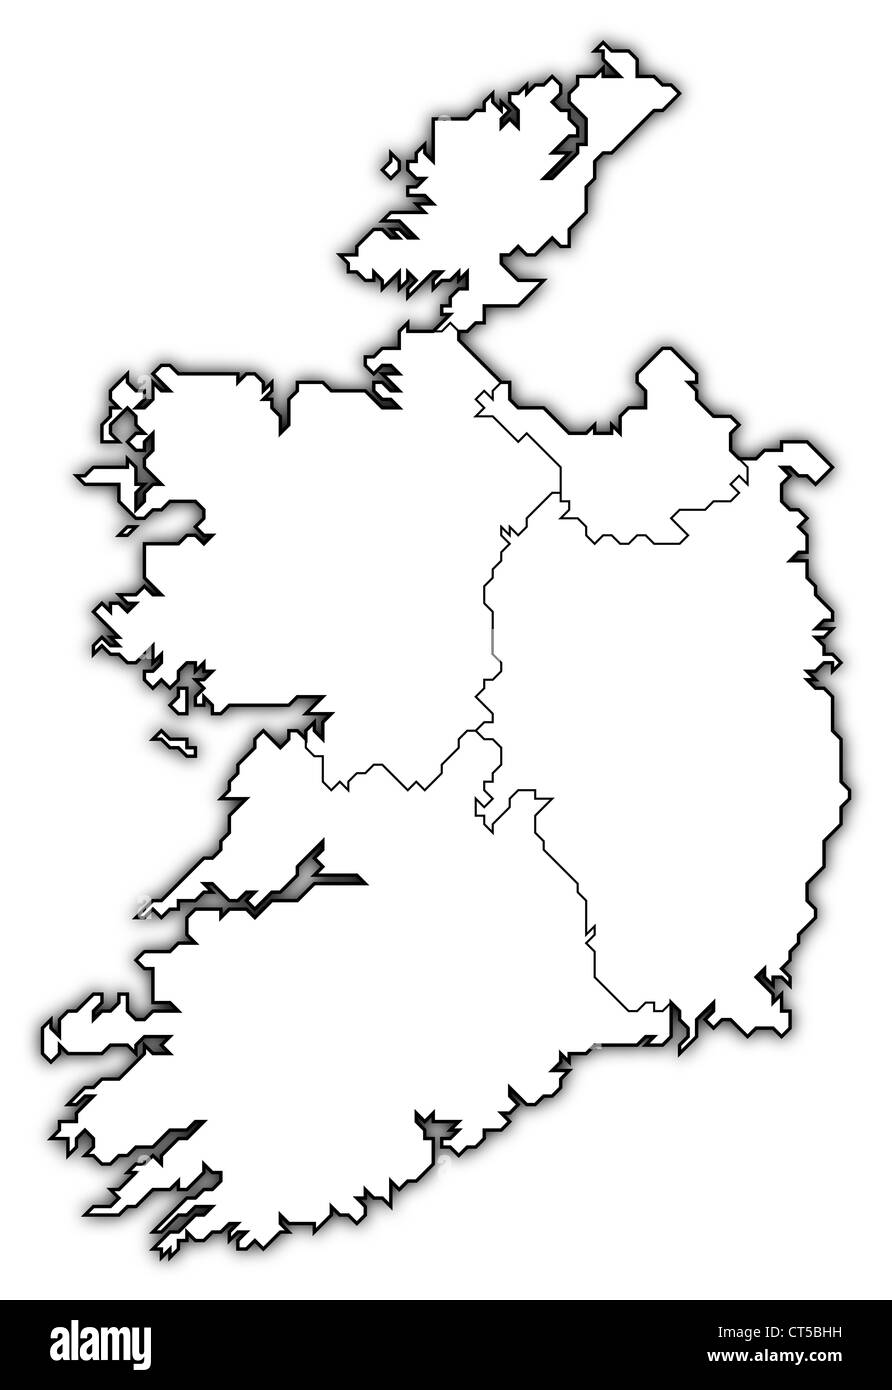 Political map of Ireland with the several provinces. - Stock Image